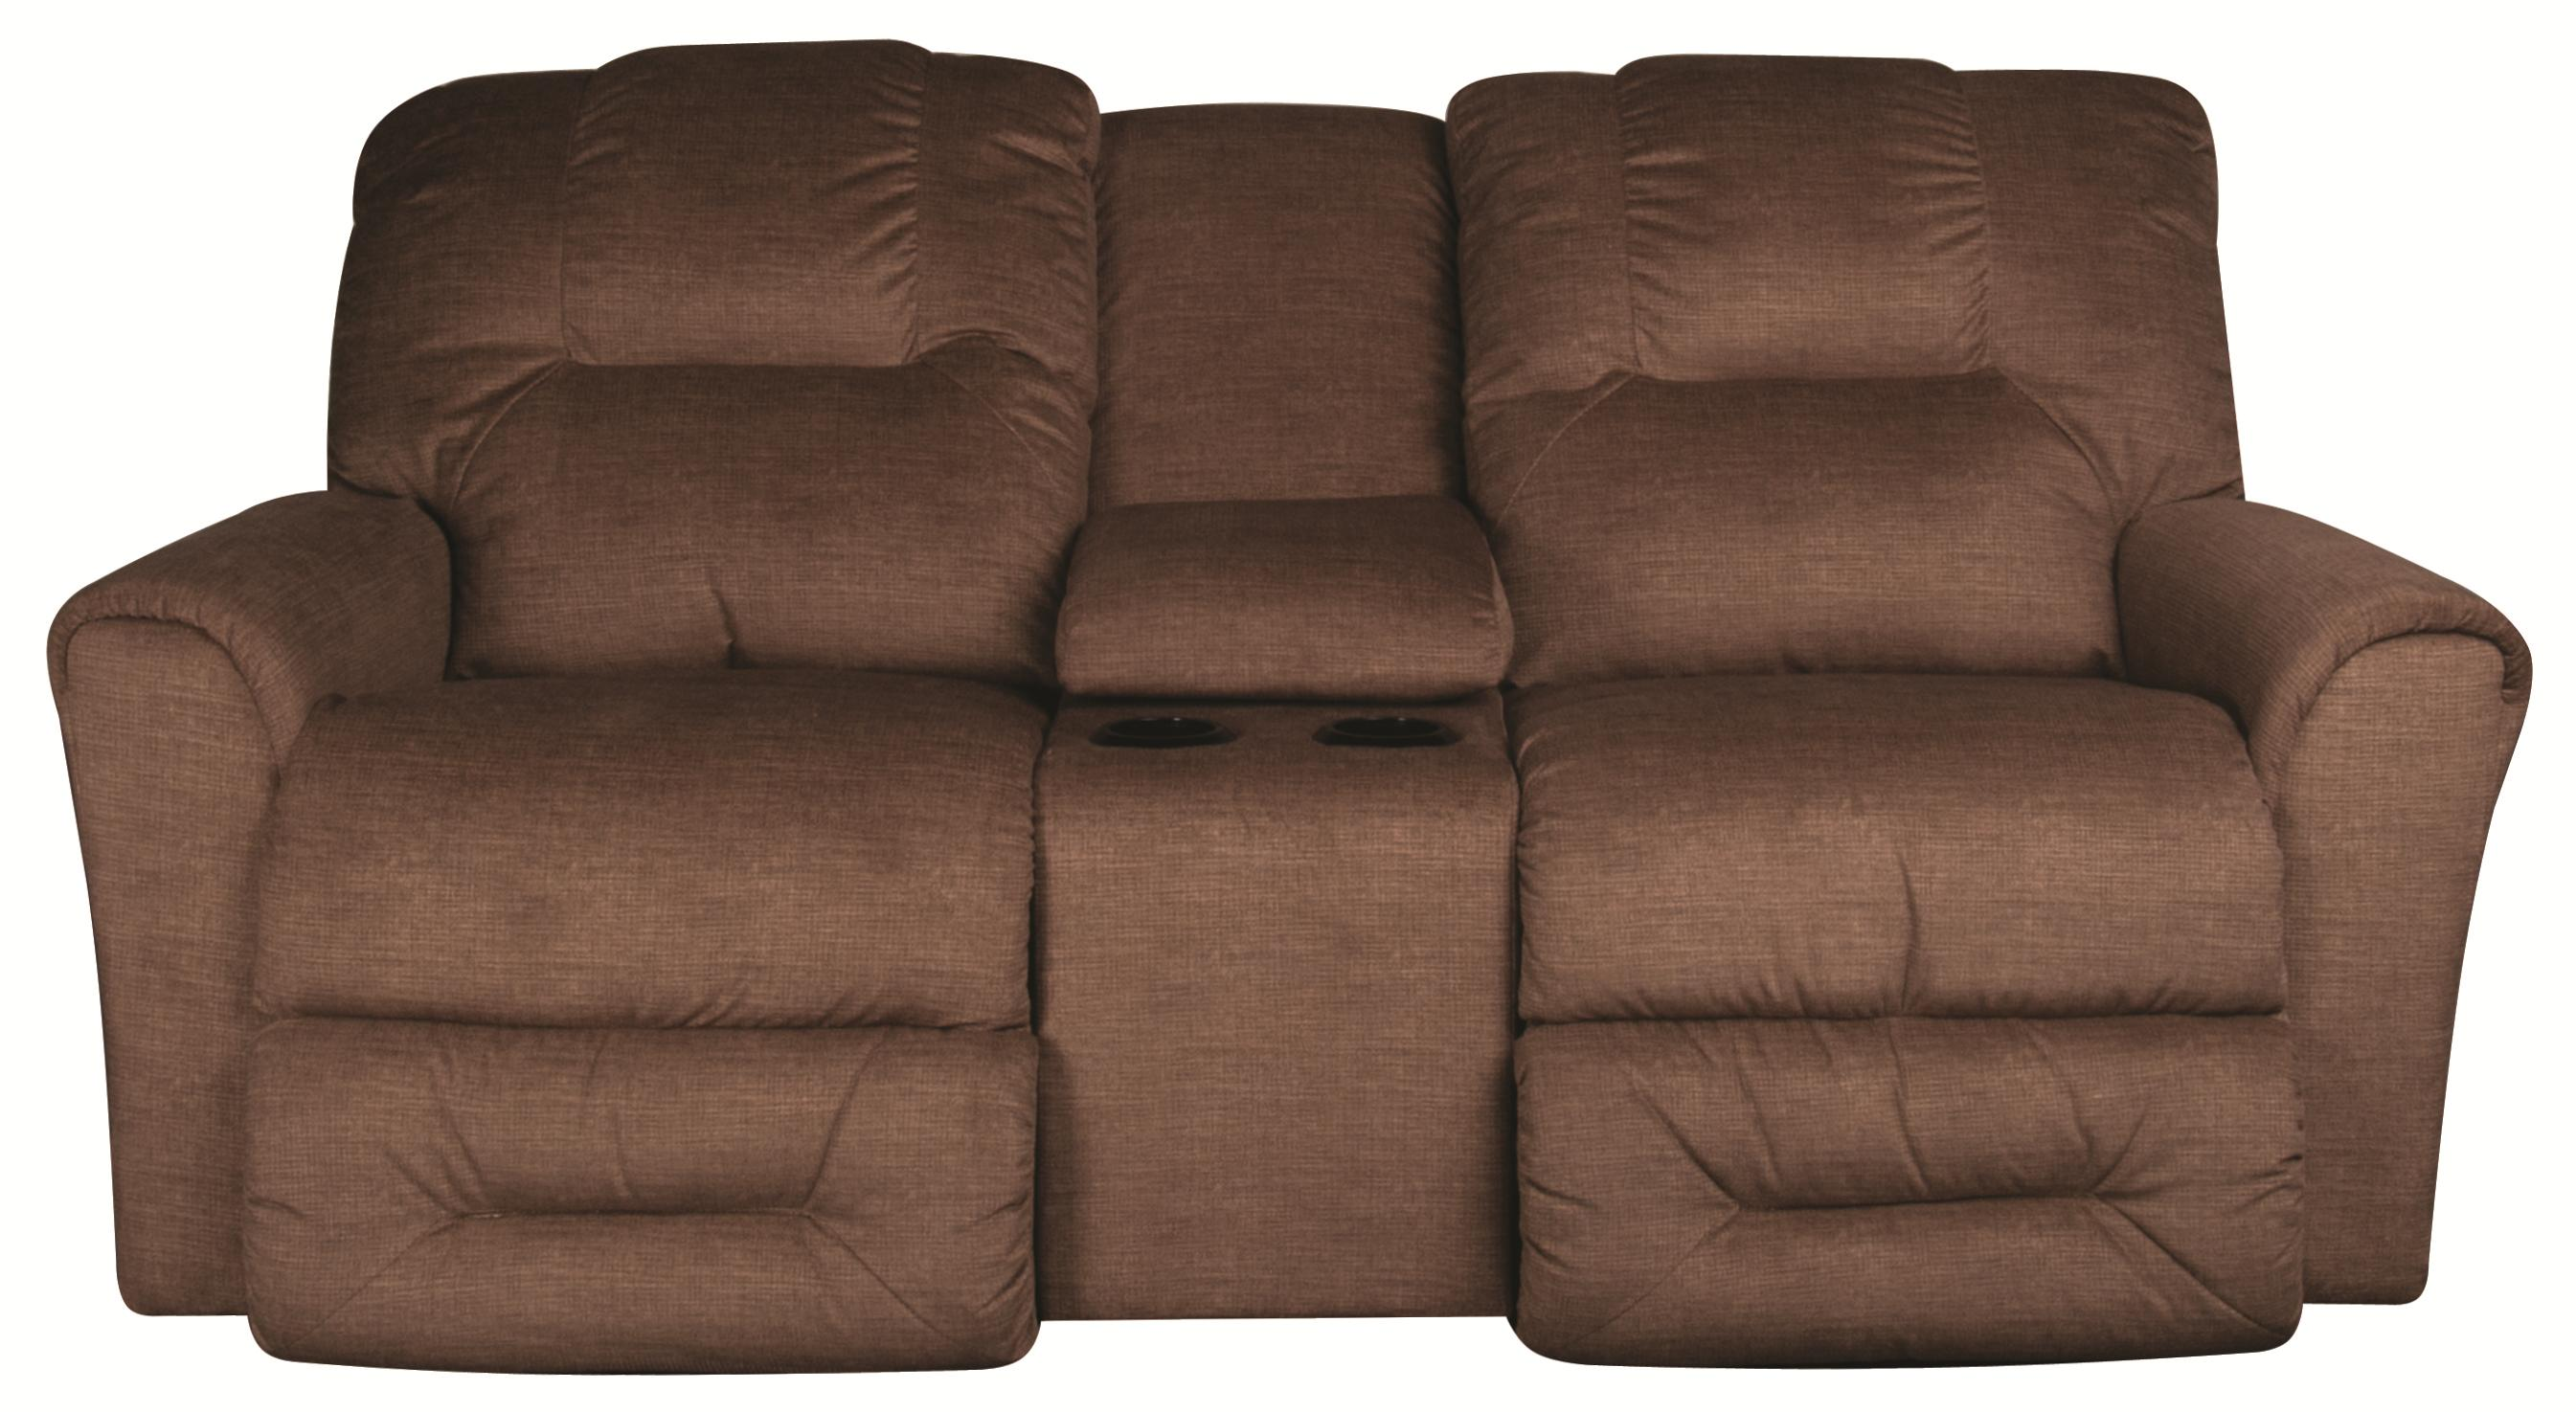 Easton Reclining Loveseat with Console